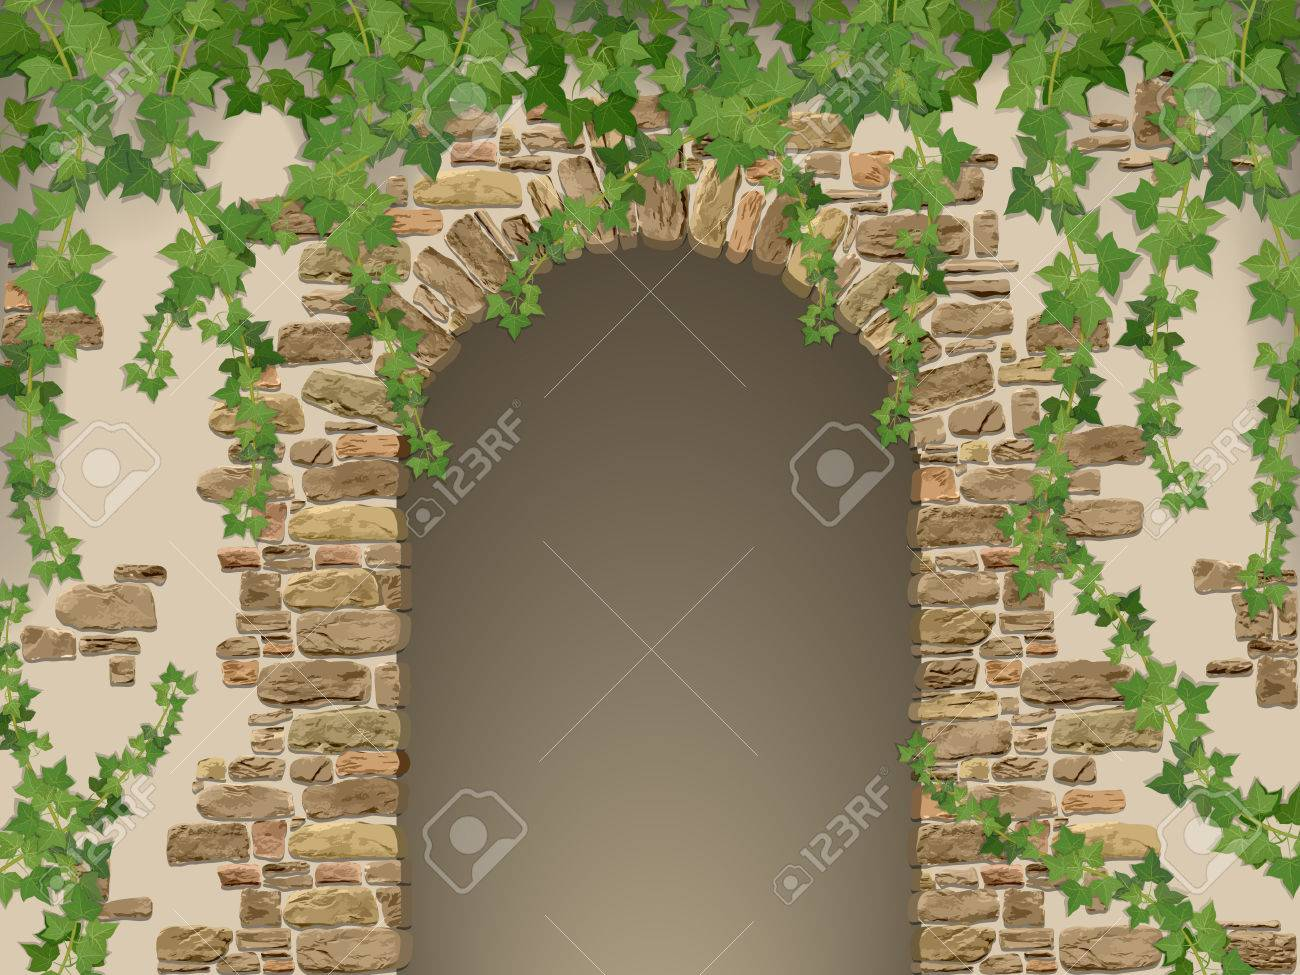 Arch of stones and hanging ivy. Entrance to the cave or cellar wreathed. - 51624231